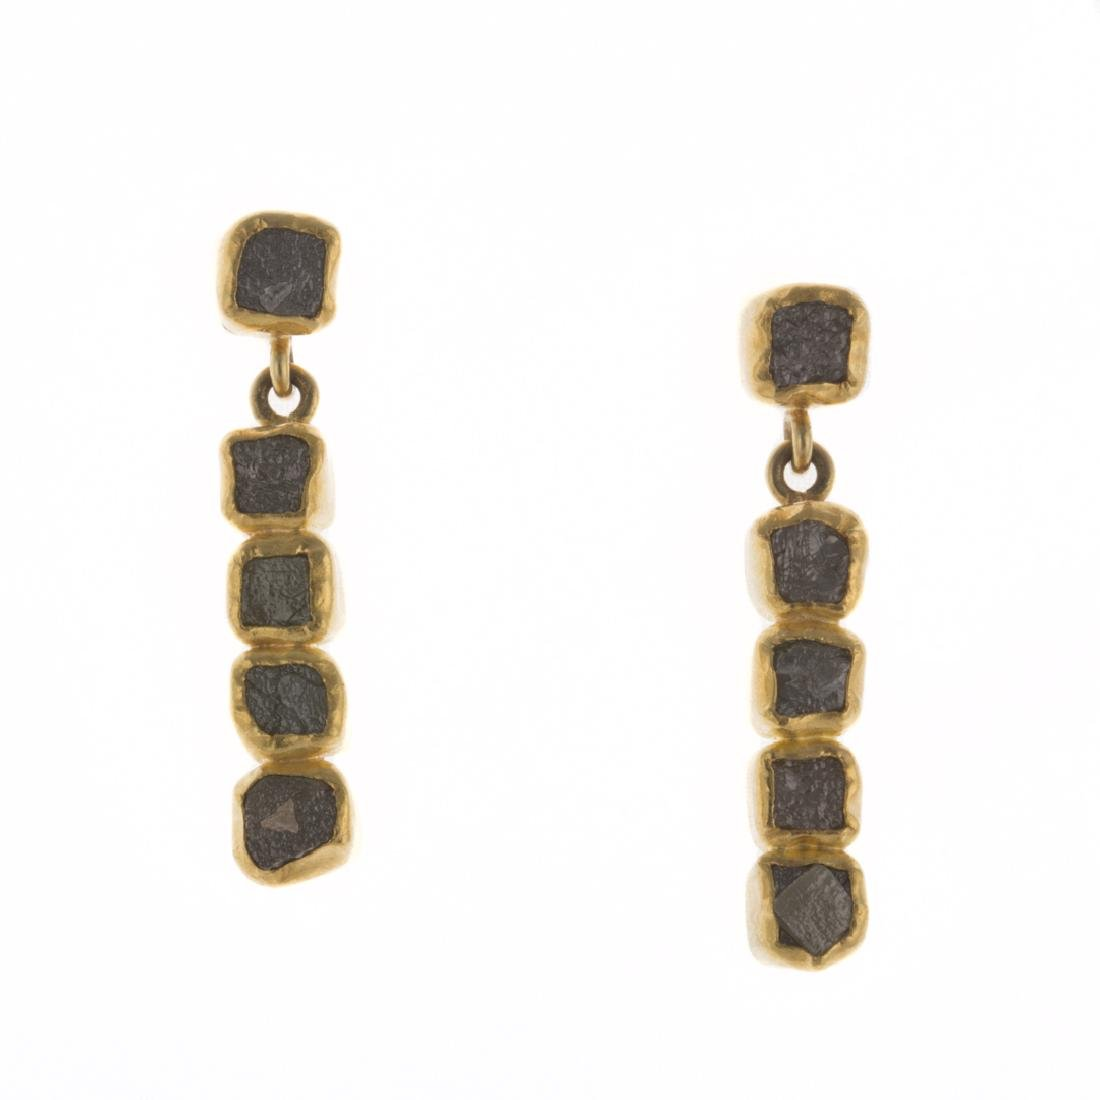 A Pair of Raw, Natural Diamond Earrings in 22K